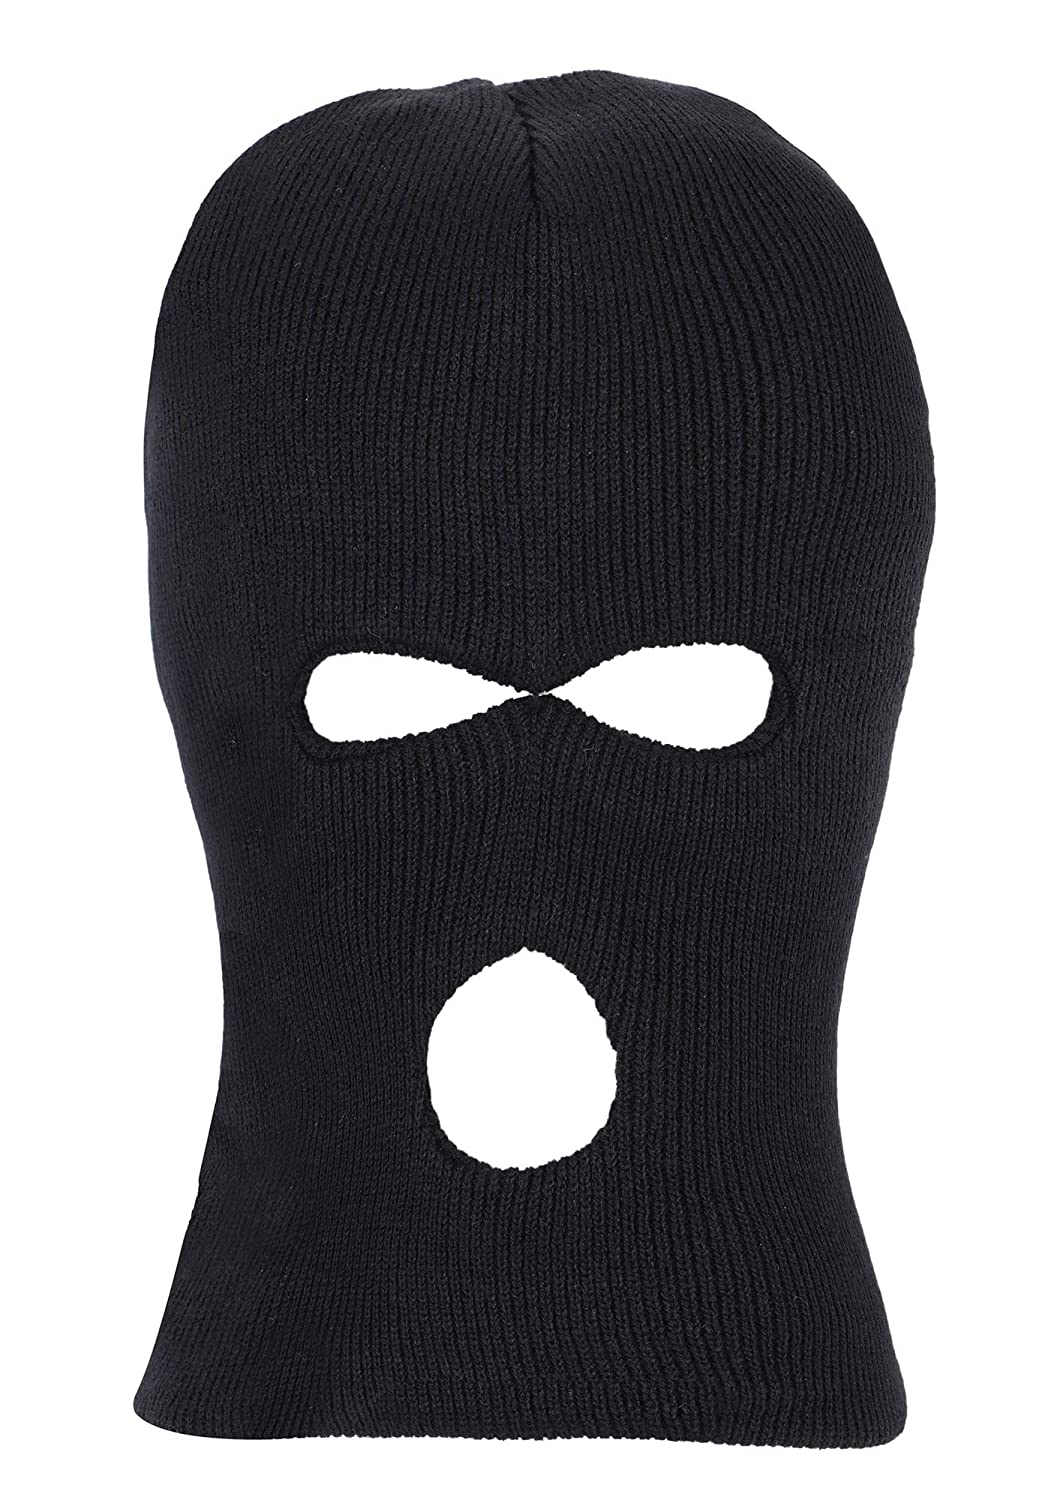 bb47e120b5c Outdoor Sports Lightweight Ski Mask Eye Hole Motorcycle Balaclava Black 3  Hole at Amazon Men s Clothing store